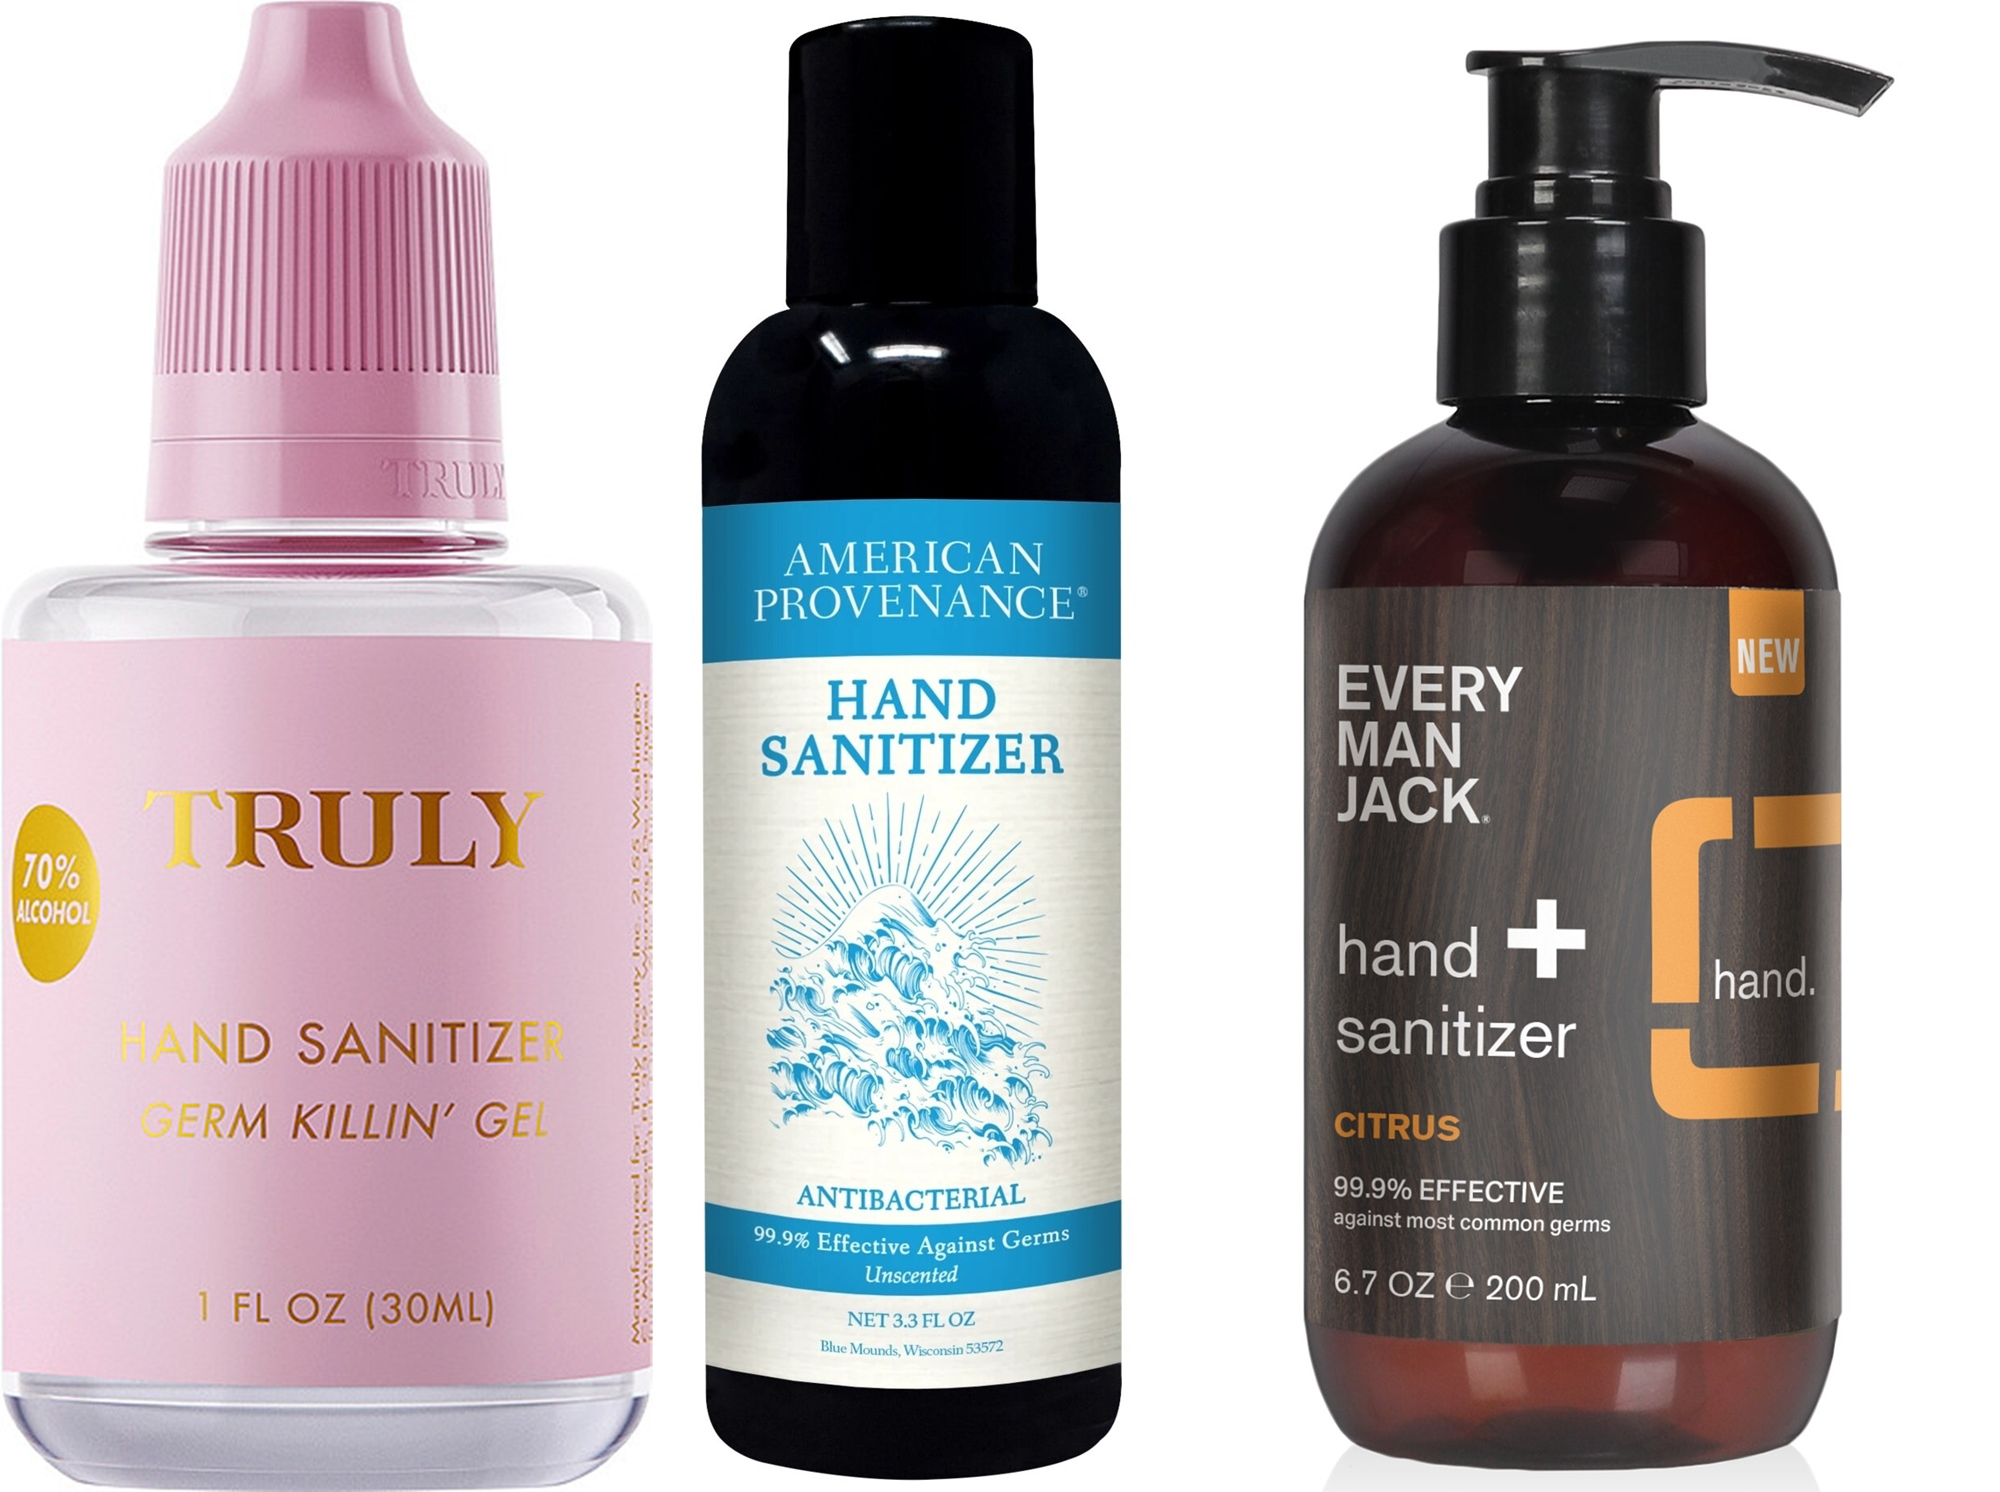 Are Hand Sanitizers the Next Big Thing in Skincare?